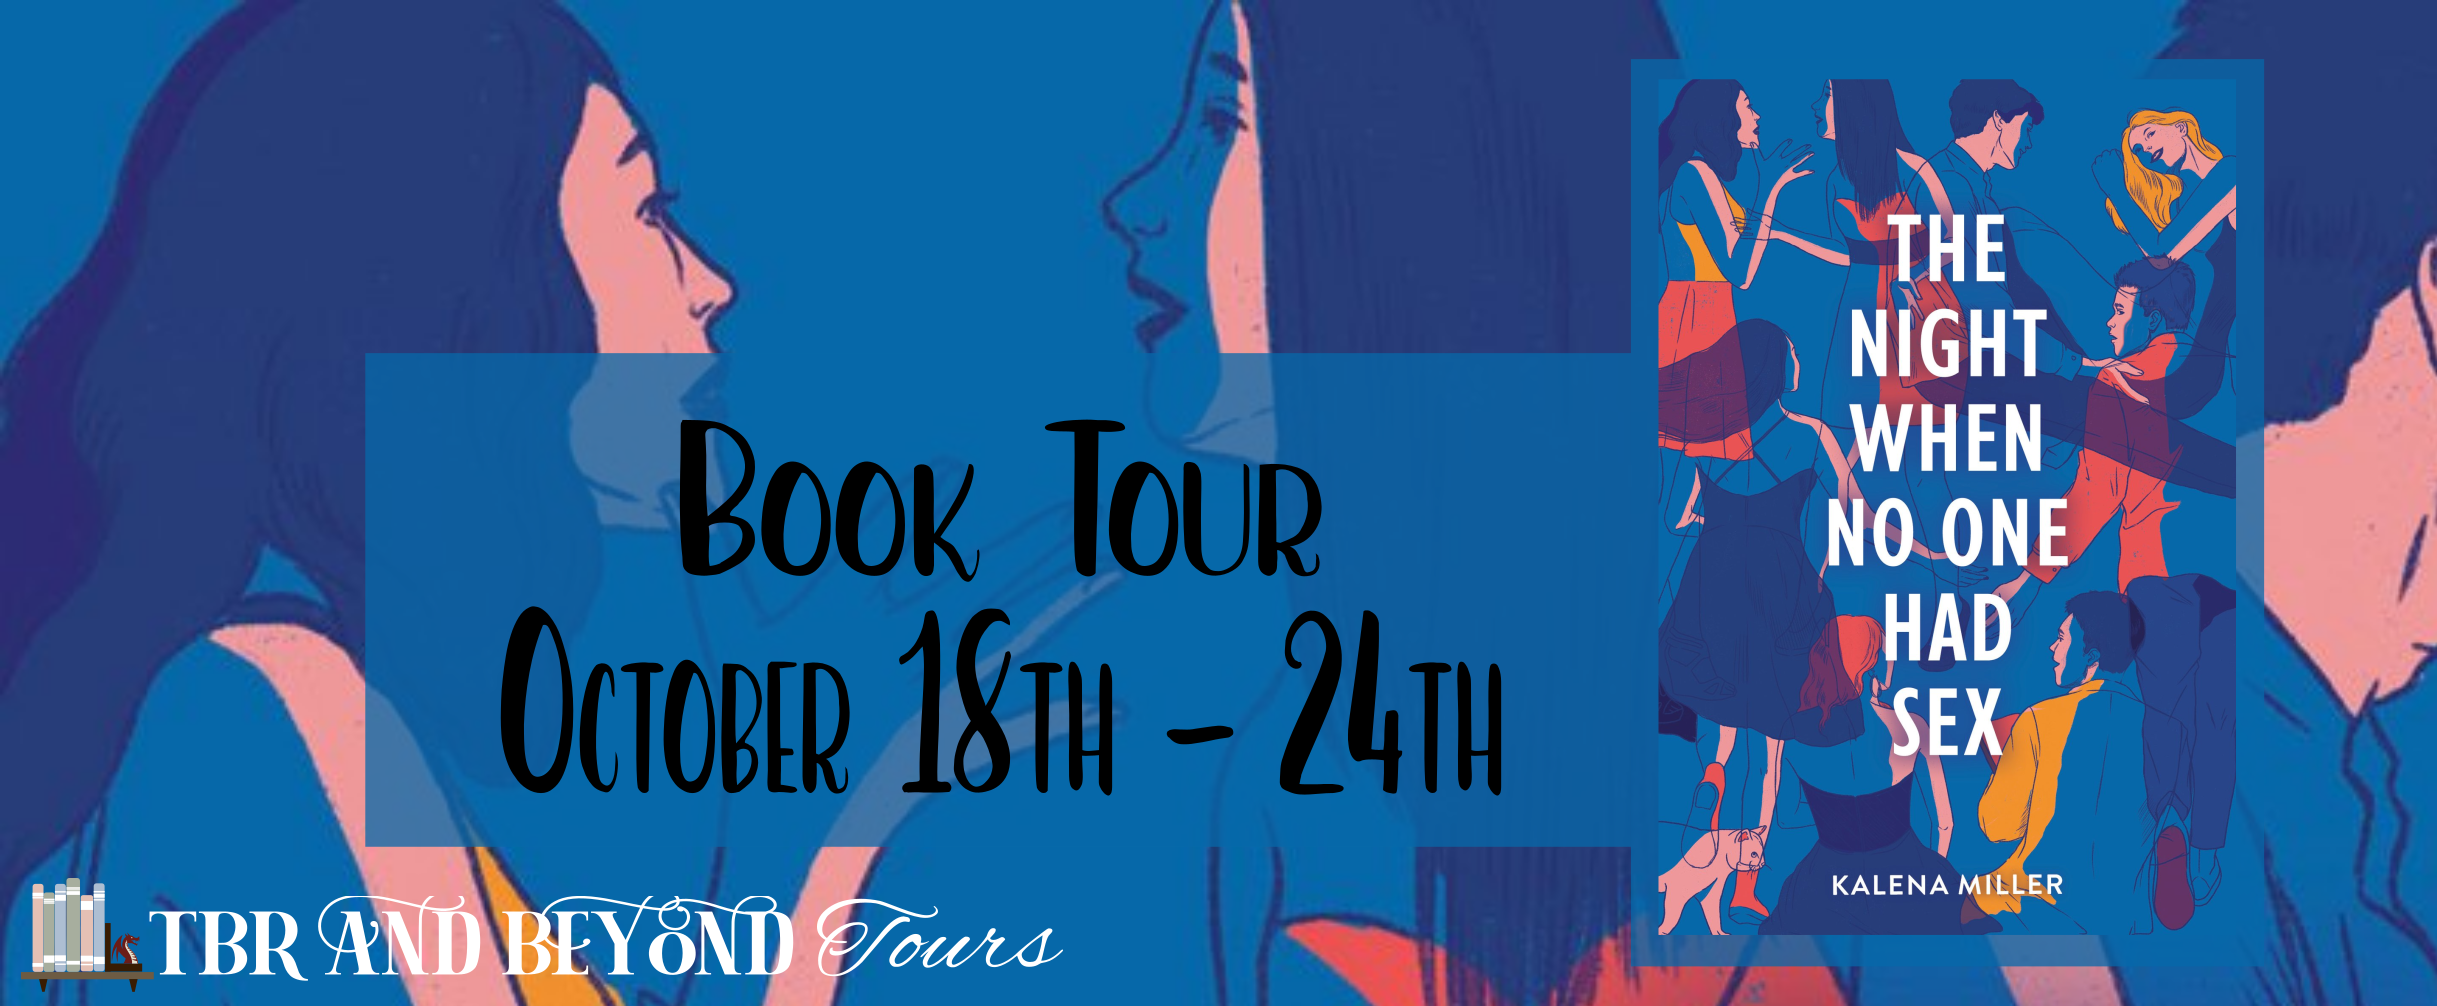 Blog Tour: The Night When No One Had Sex by Kalena Miller (Interview!)